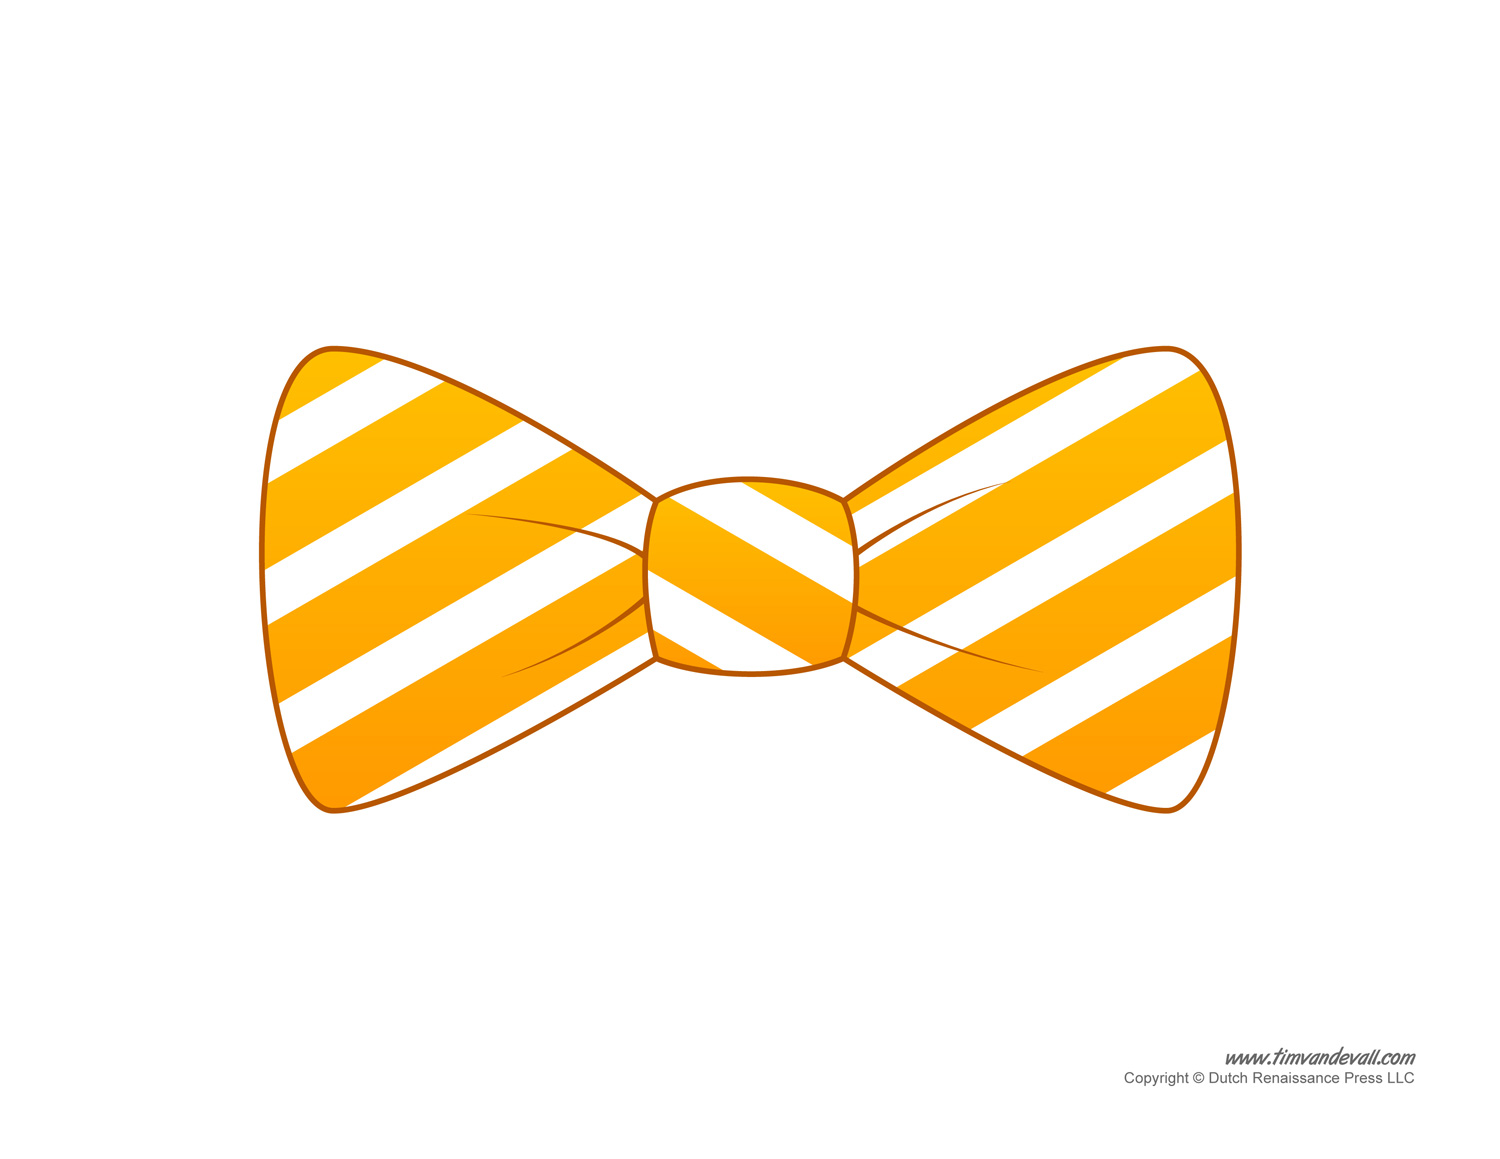 photo regarding Bow Tie Template Printable identify Paper Bow Tie Templates Bow Tie Printables